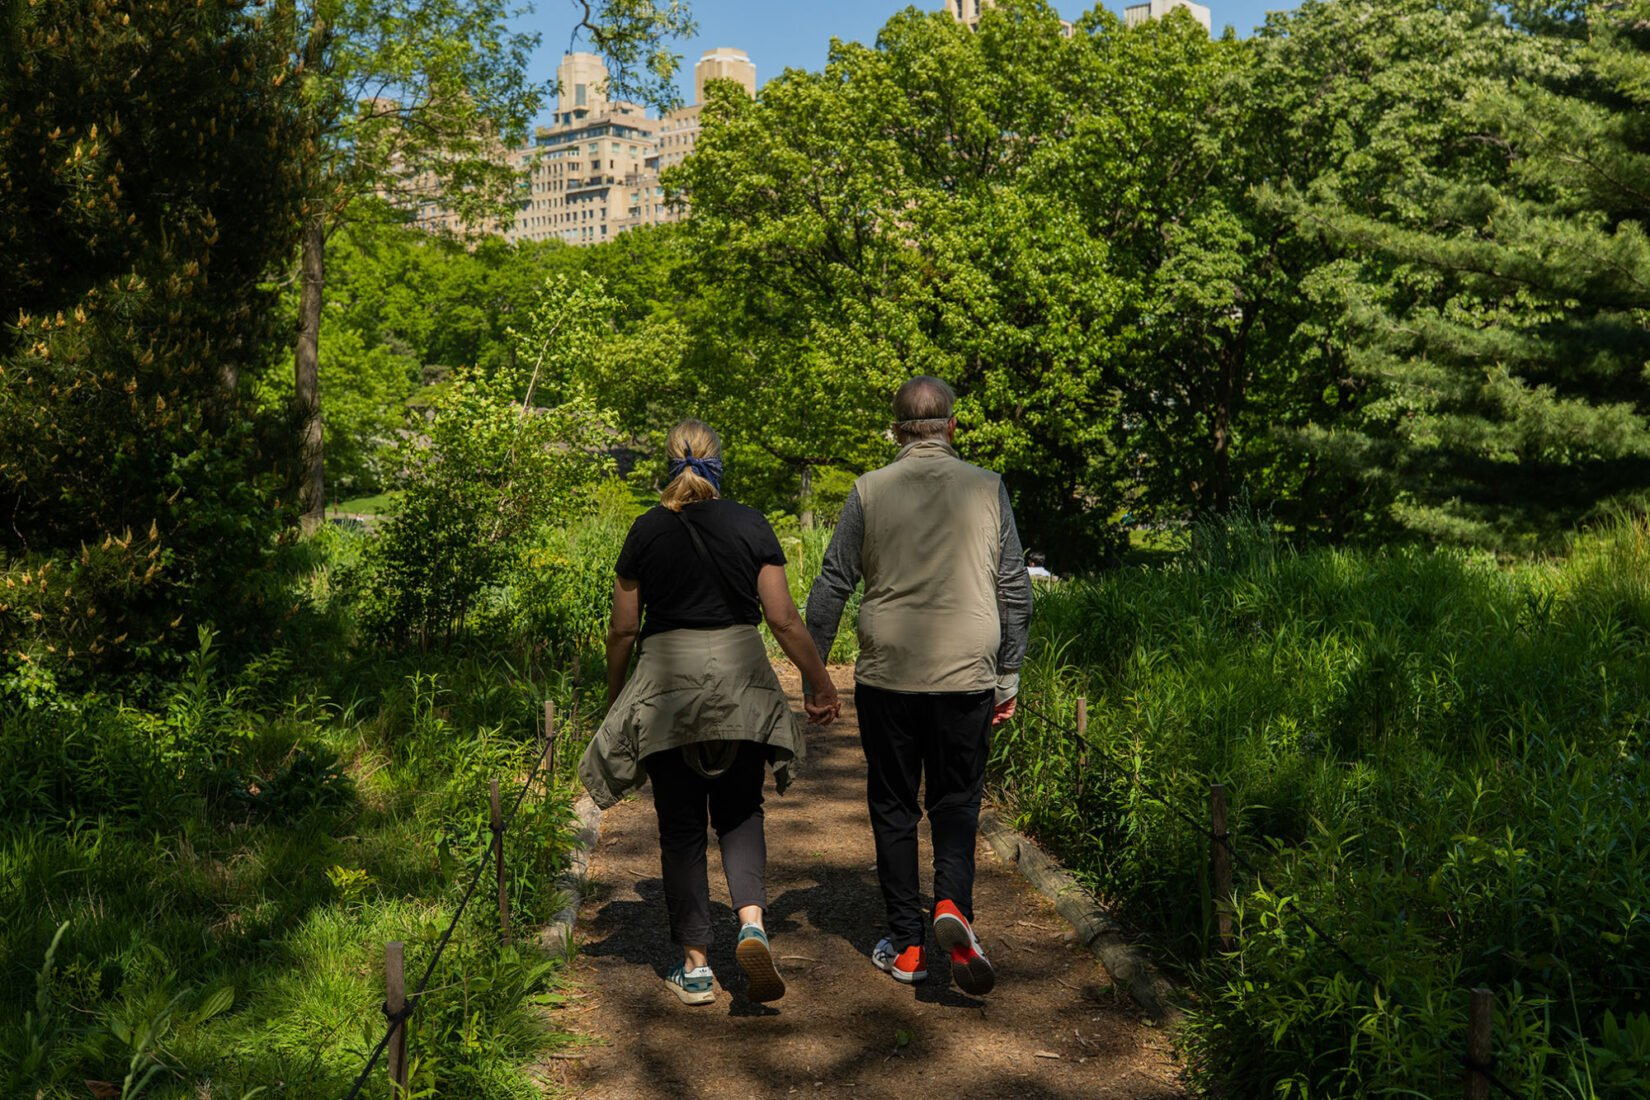 A couple walk hand-in-hand down a romantic, sunlit footpath